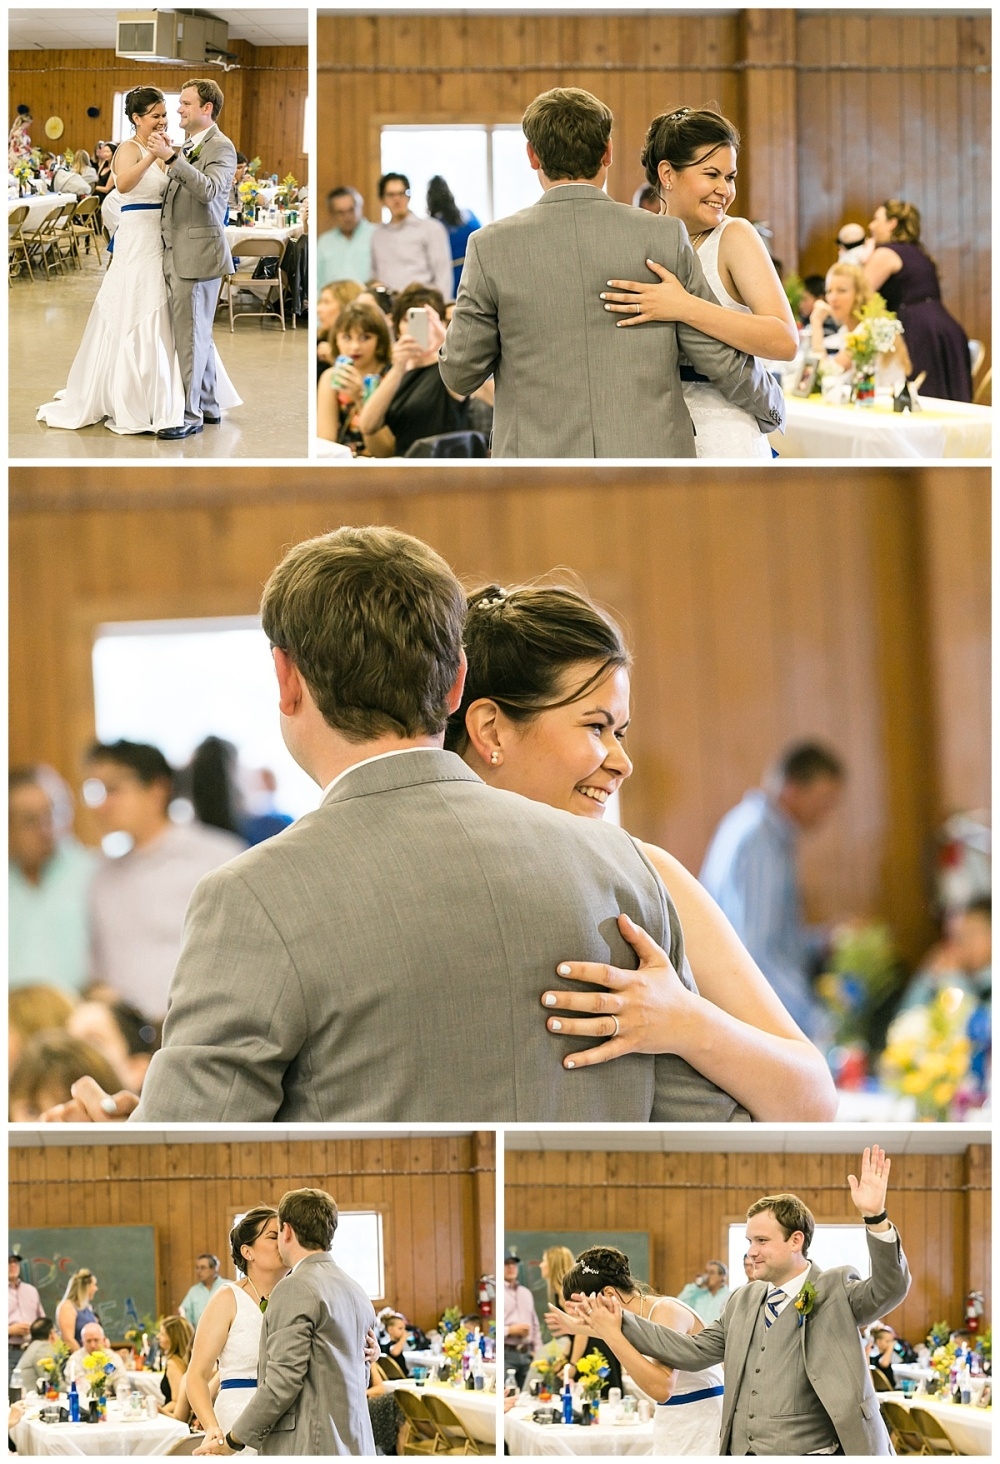 Texas-Wedding-Photographer-La-Coste-Our-Lady-Of-Grace-Church-Bride-Groom-Lego-Theme-Carly-Barton-Photography_0065.jpg